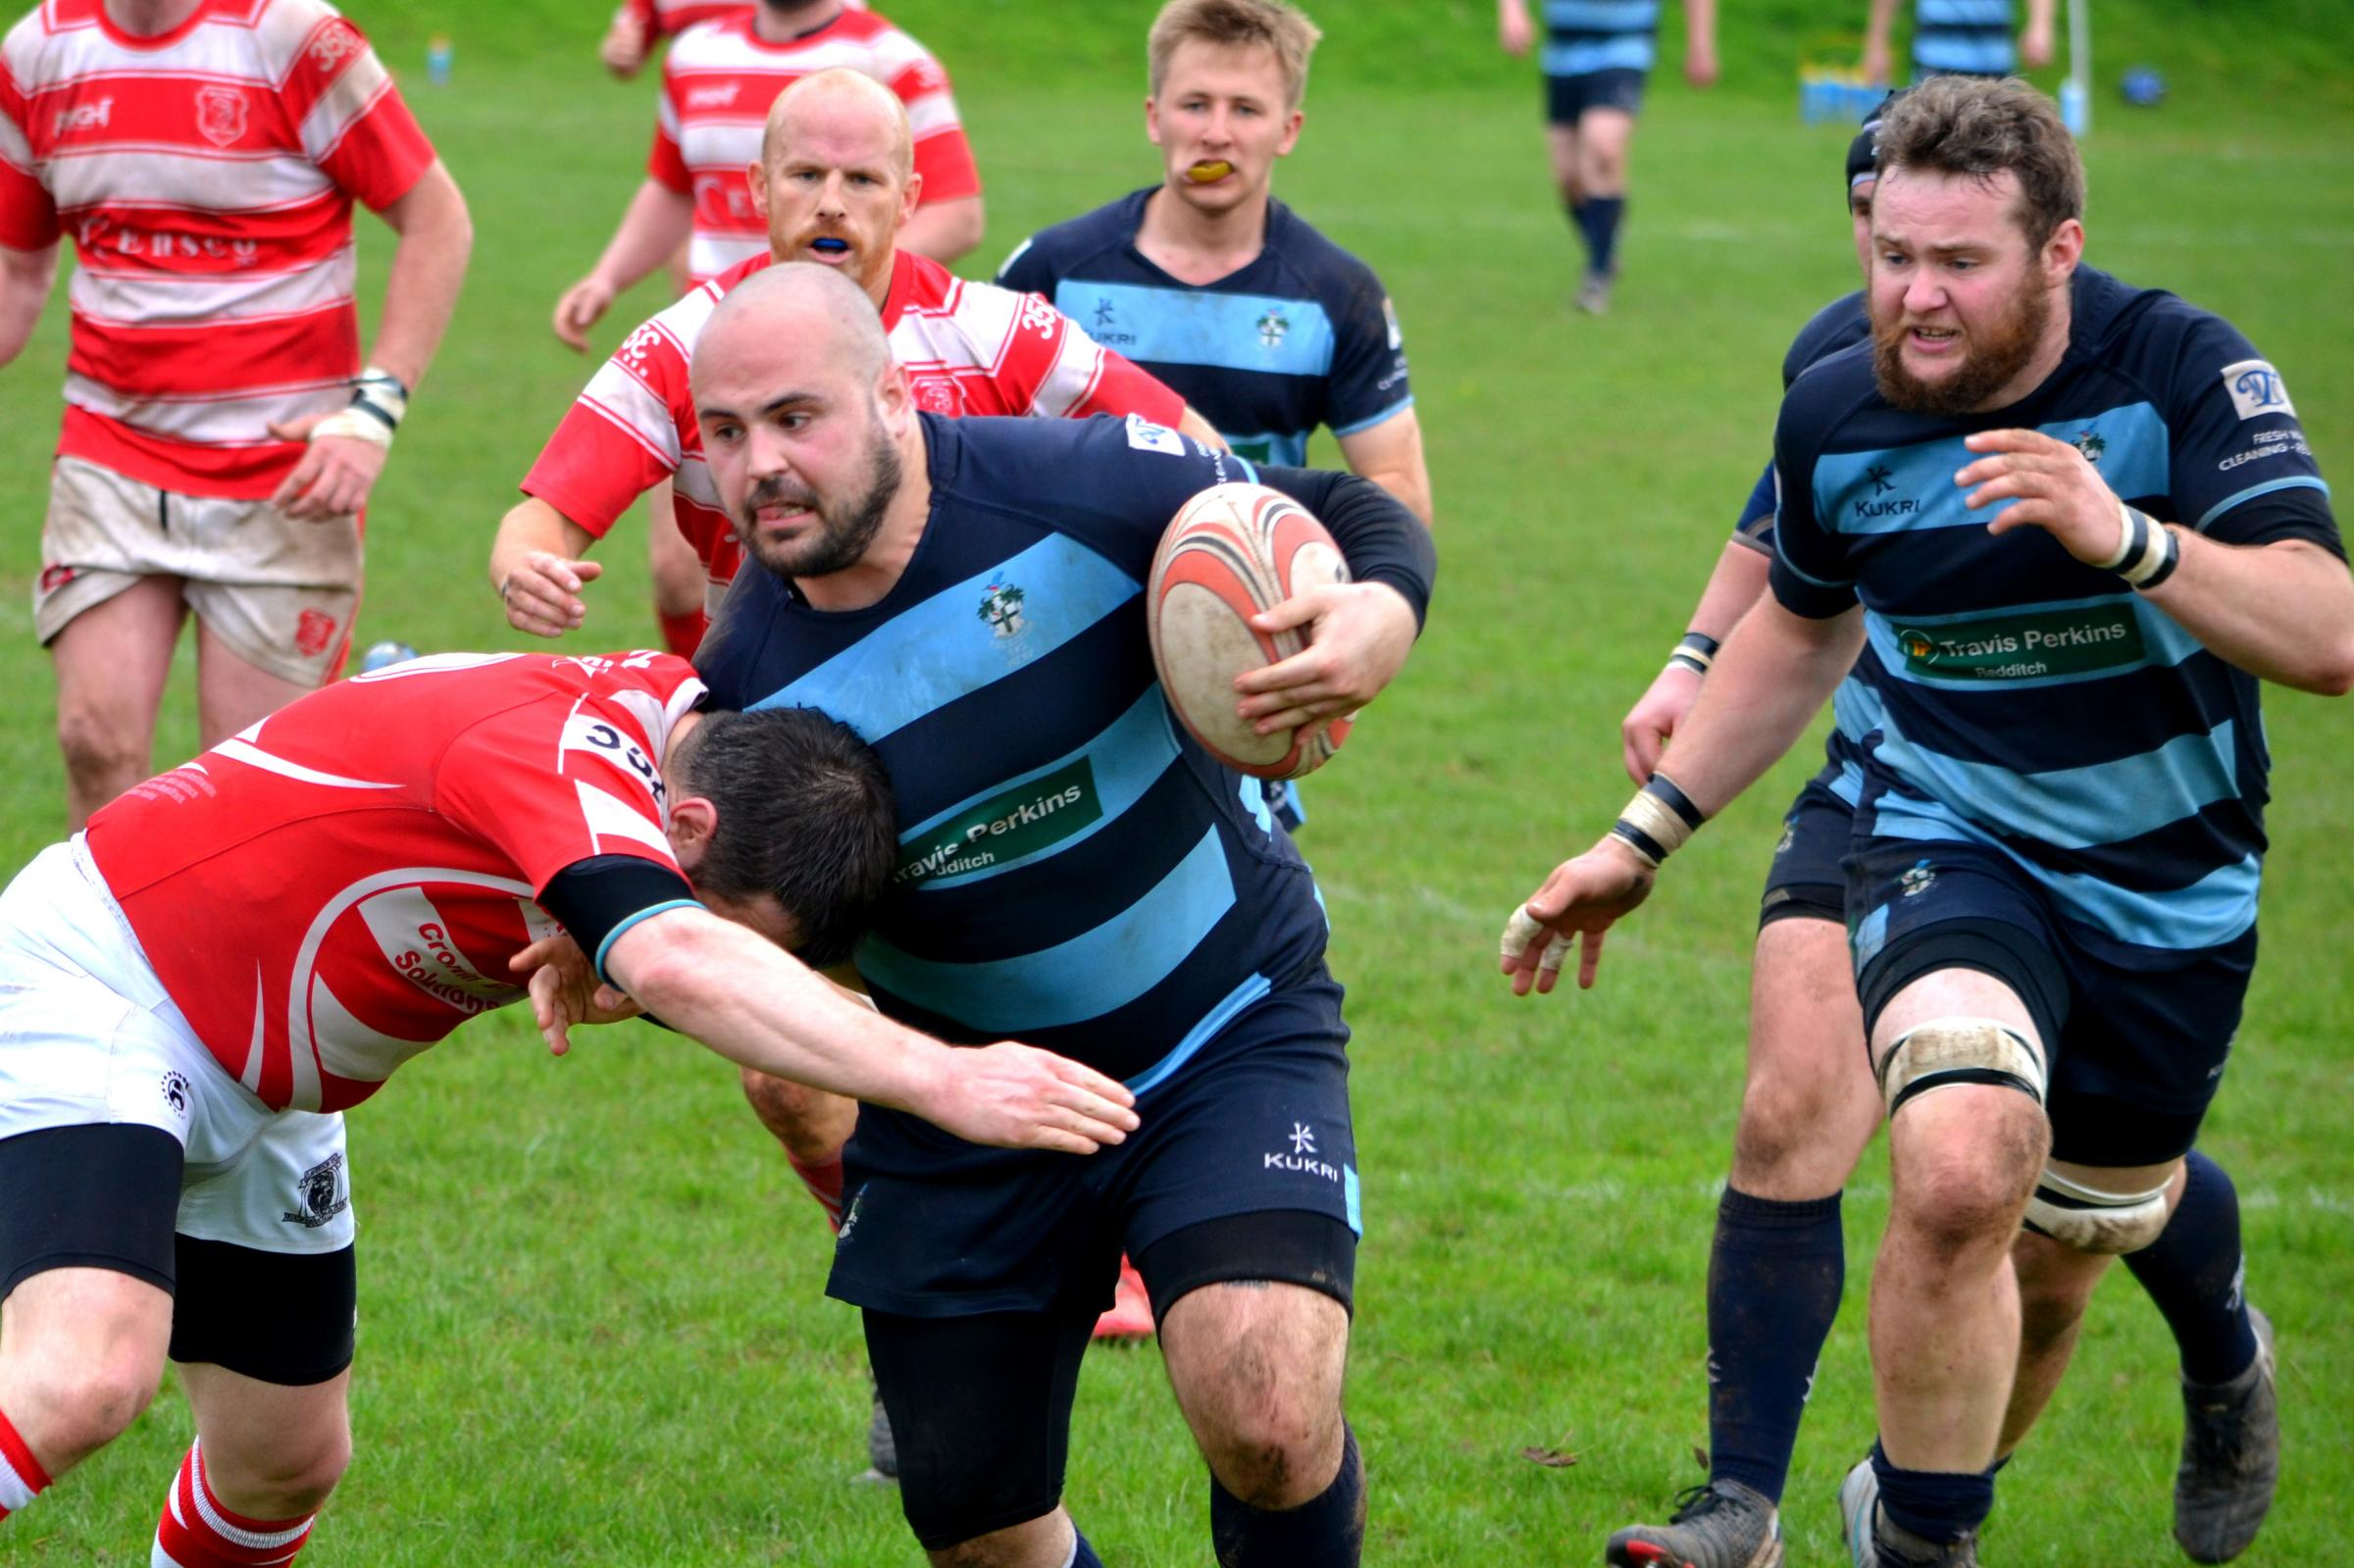 Josh Kearney attacking for Redditch. Picture: Redditch RFC